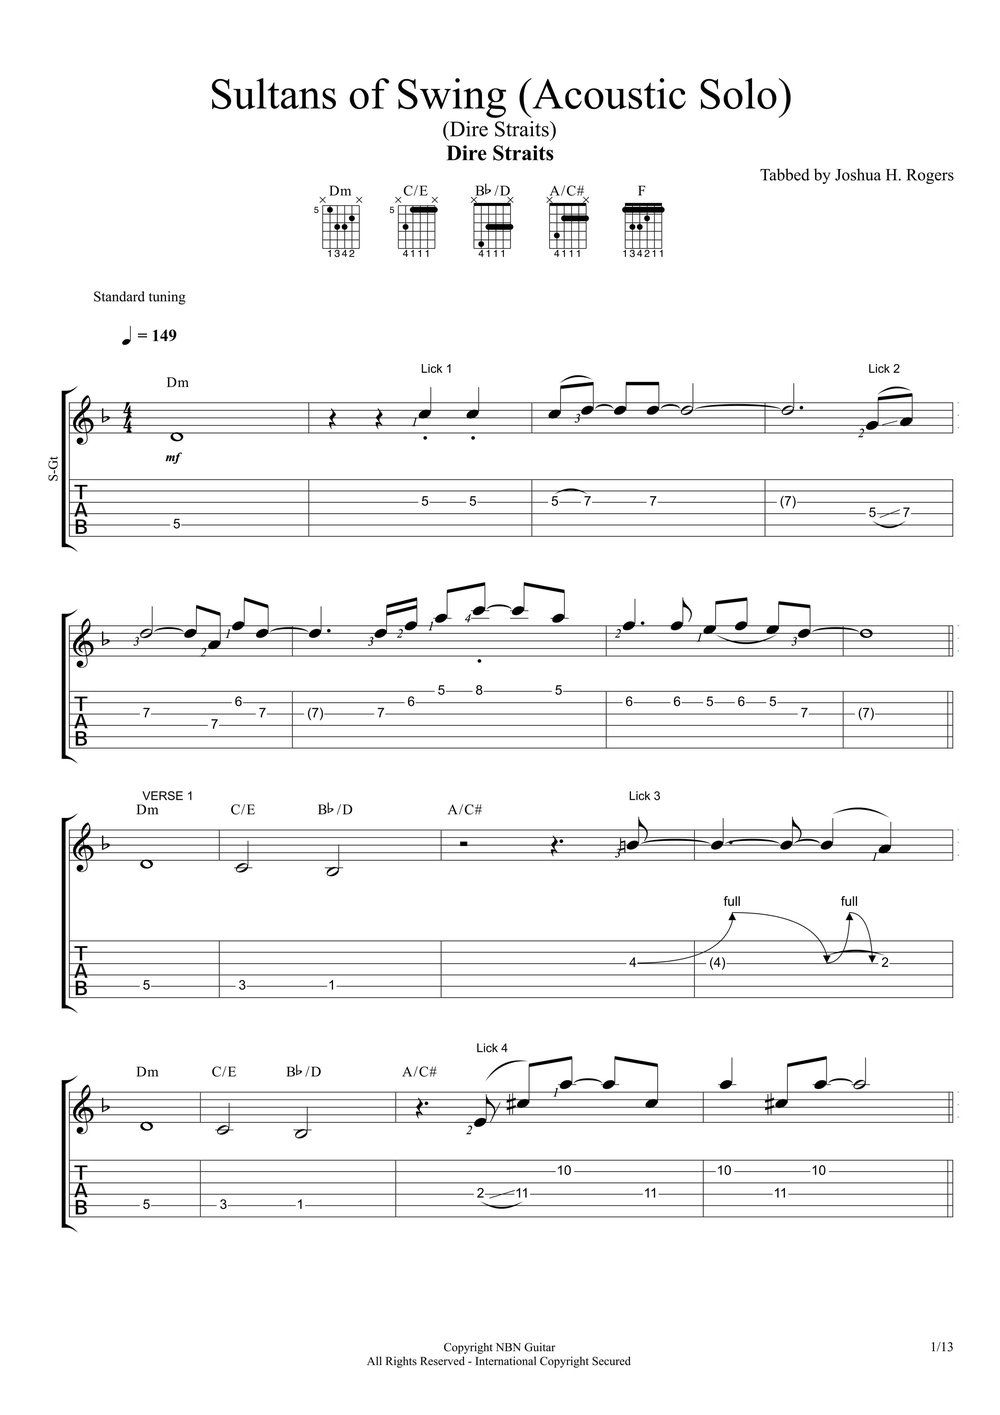 Sultans of Swing (Acoustic Solo)-p01.jpg